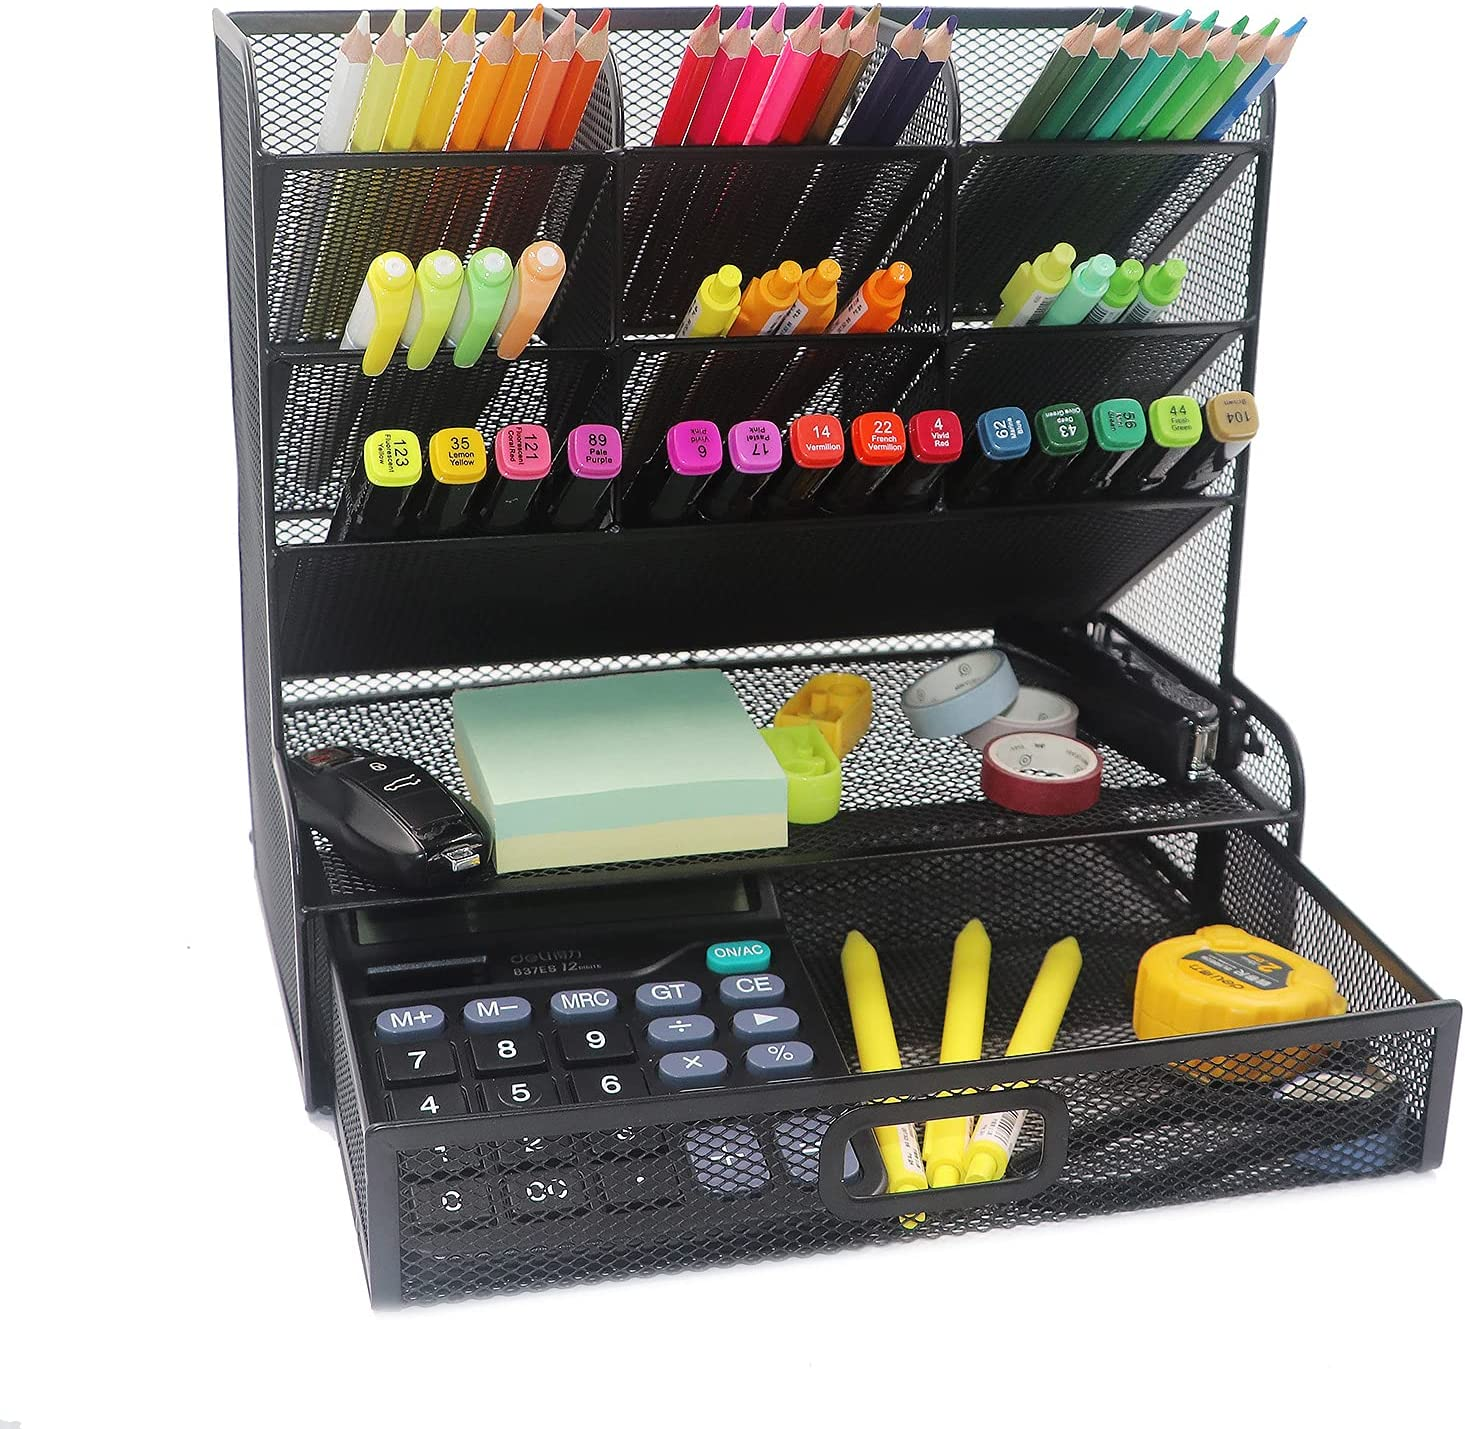 DALTACK Mesh Desk Organizer, Multi-Functional Pen Holder, Desktop Organizer Collection - 9 Compartments with A Storage Rack & Drawer - Markers Pen Holder for Office School Home Supply - Black